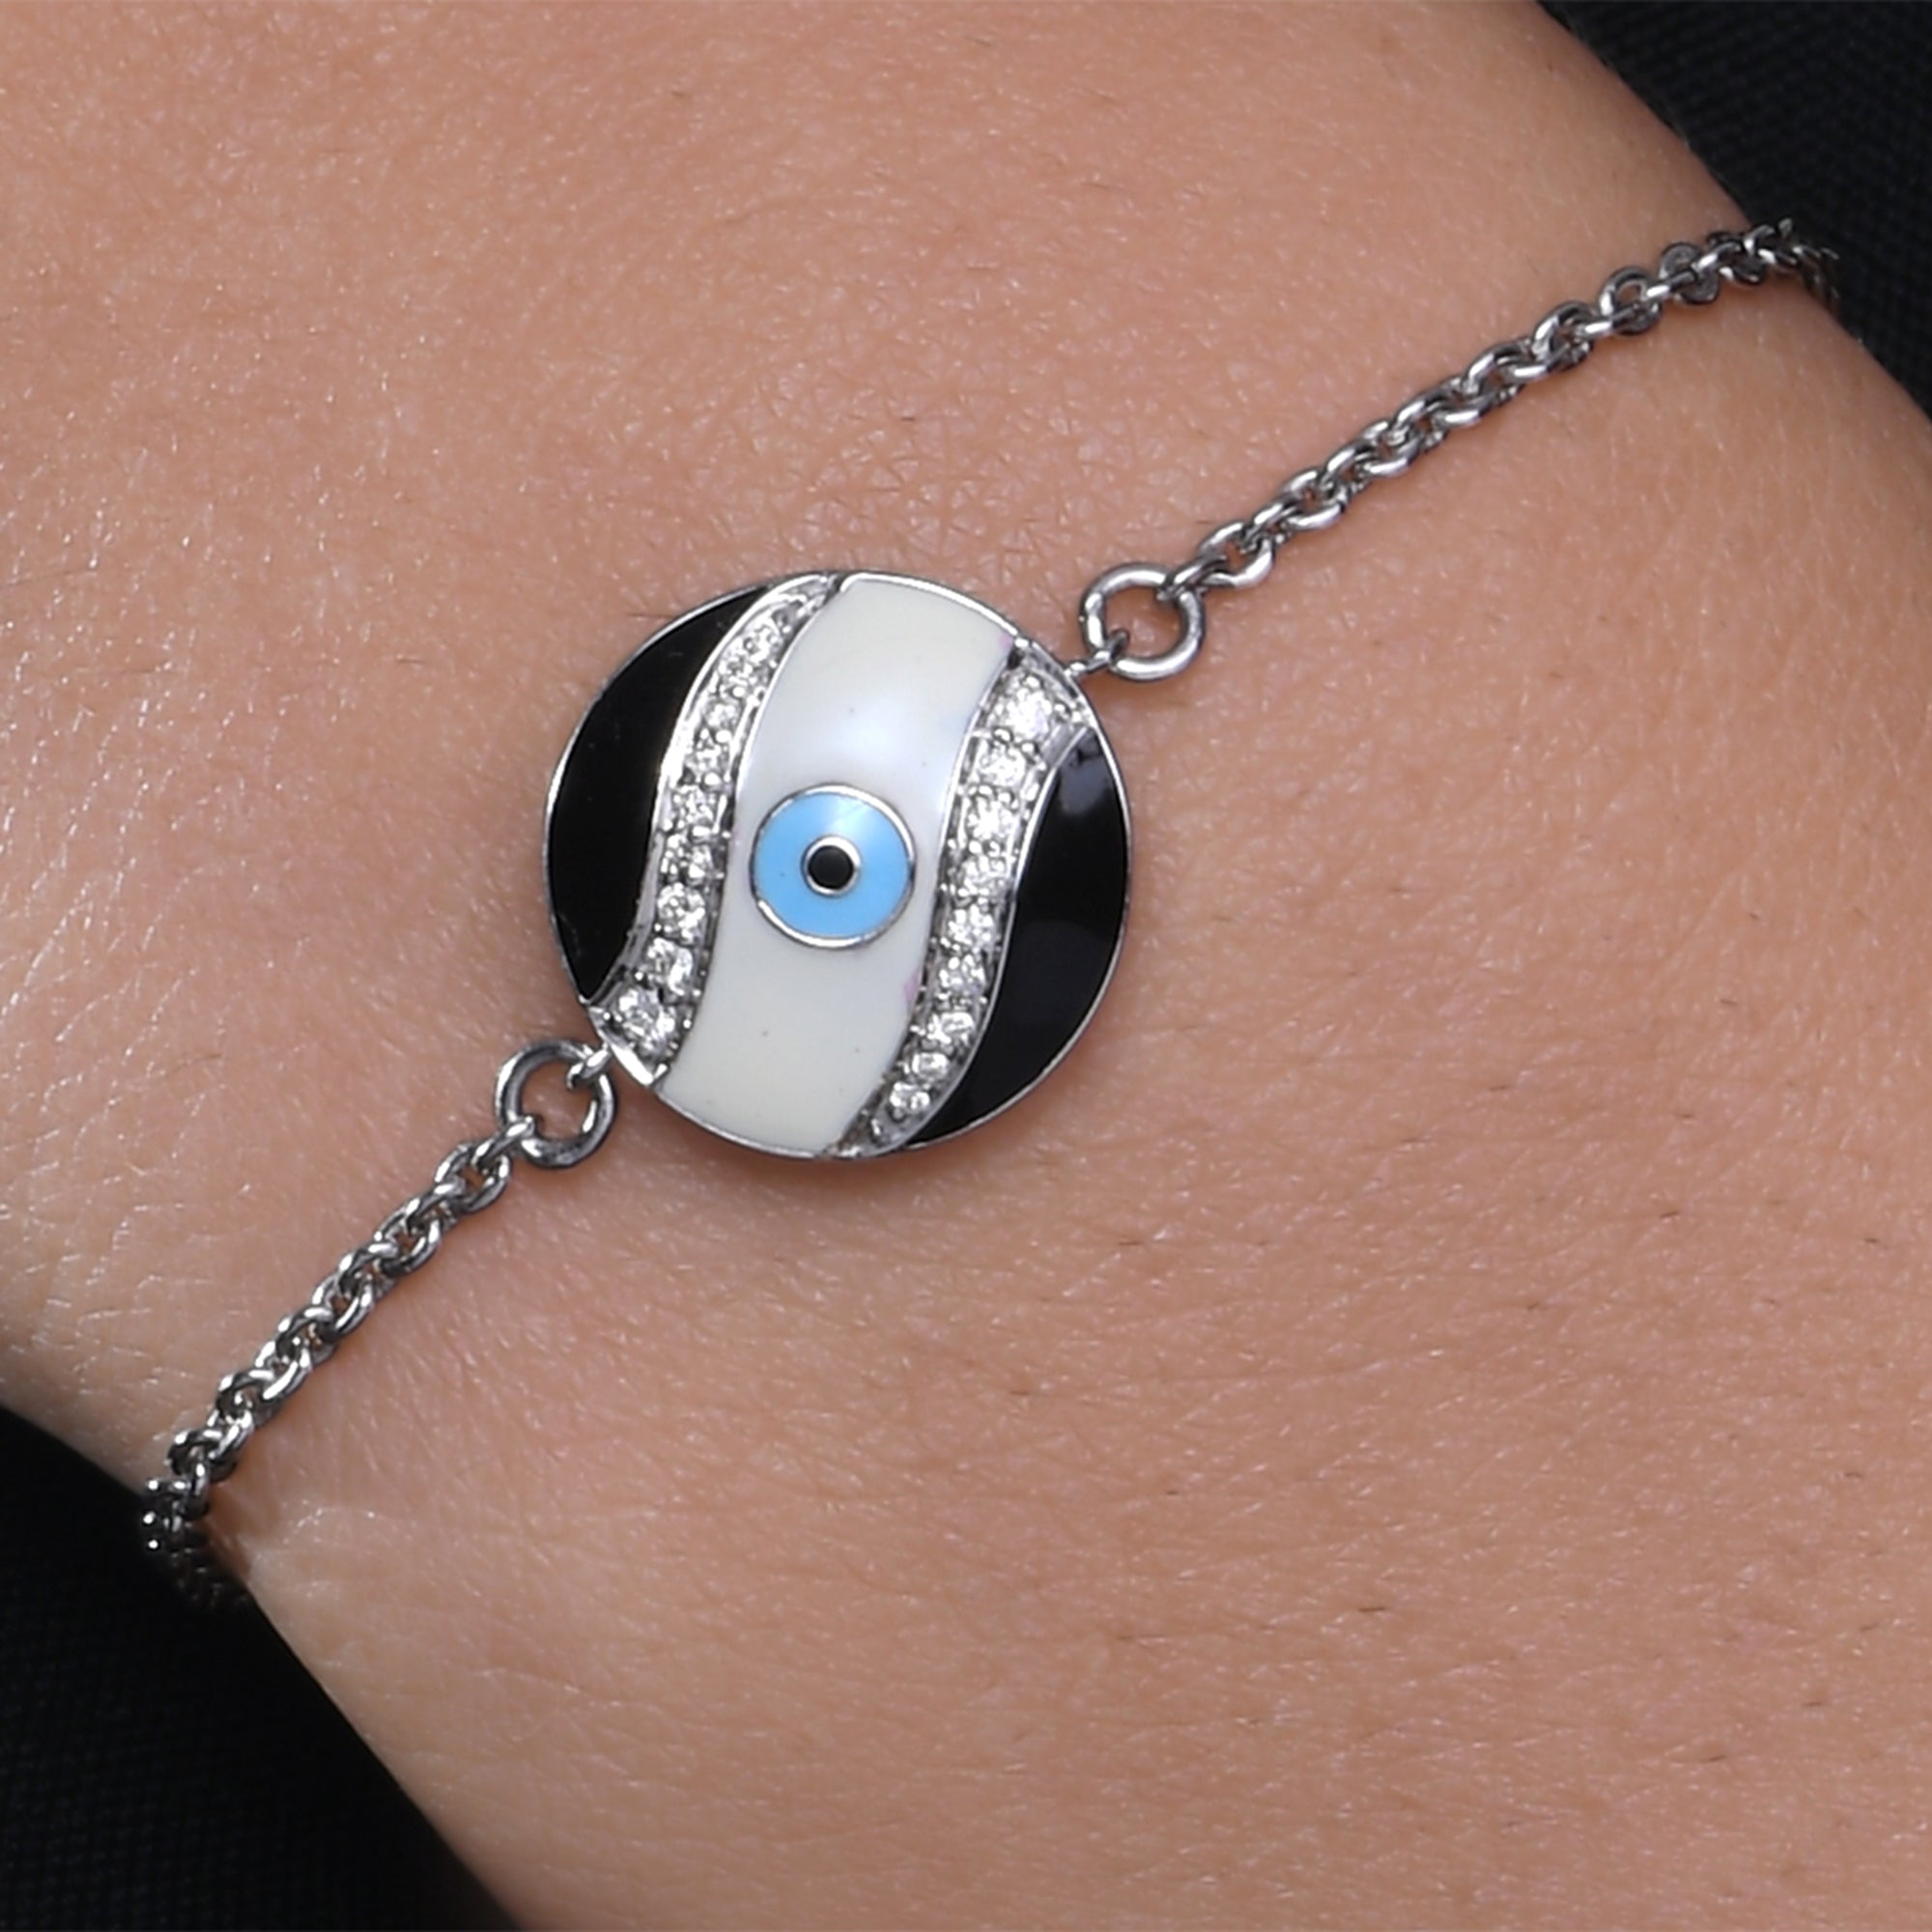 Round Enamel Evil Eye Diamond Chain Bracelet